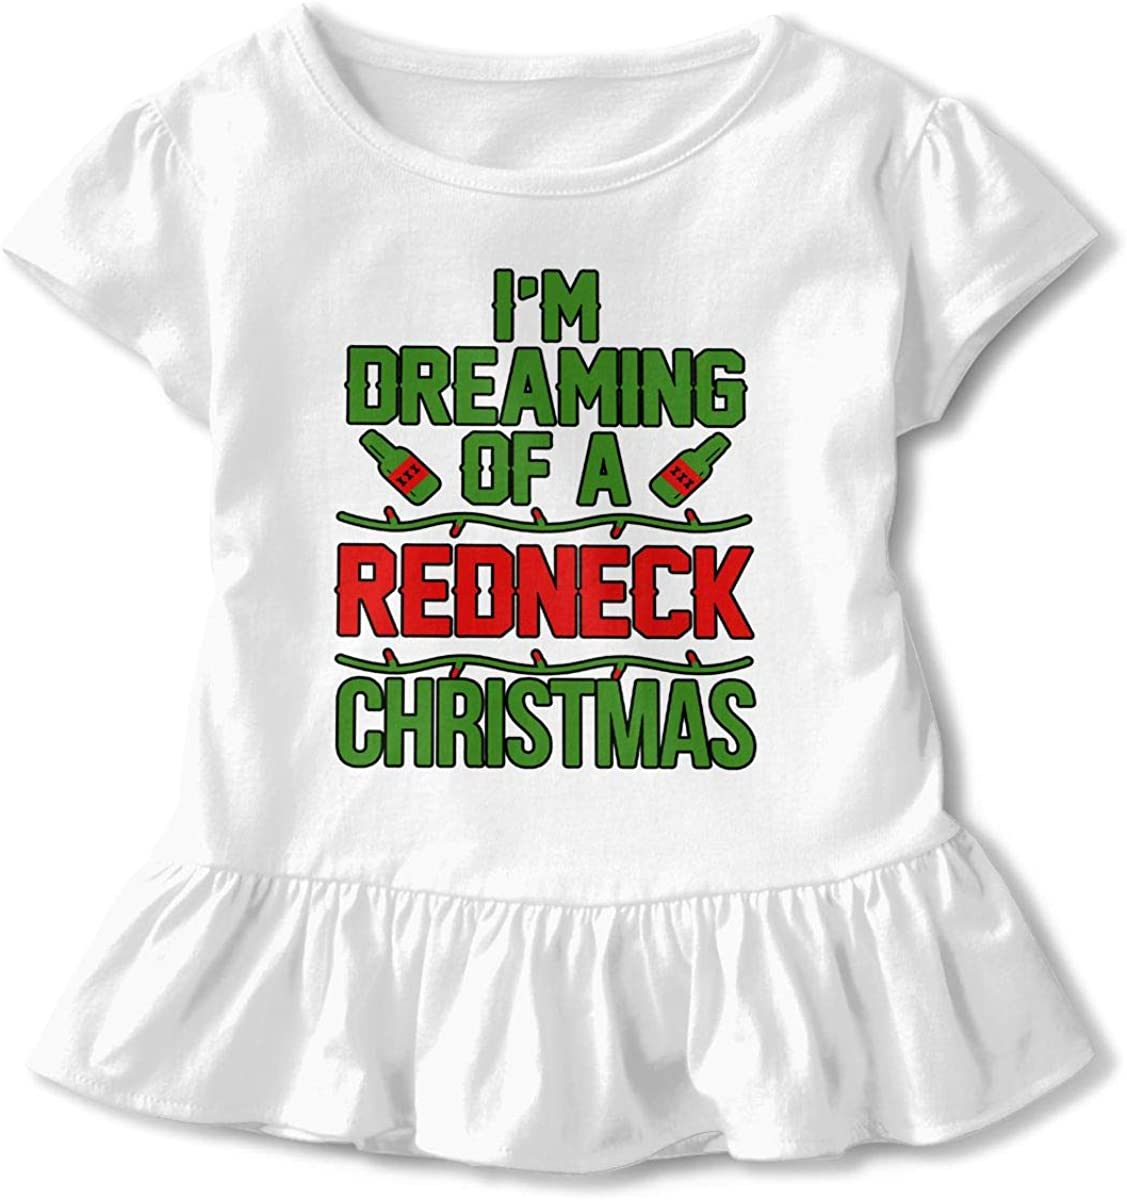 Im Dreaming of A Redneck Christmas Baby Skirts Stylish Kids T Shirt Dress Cotton Flounces Outfits